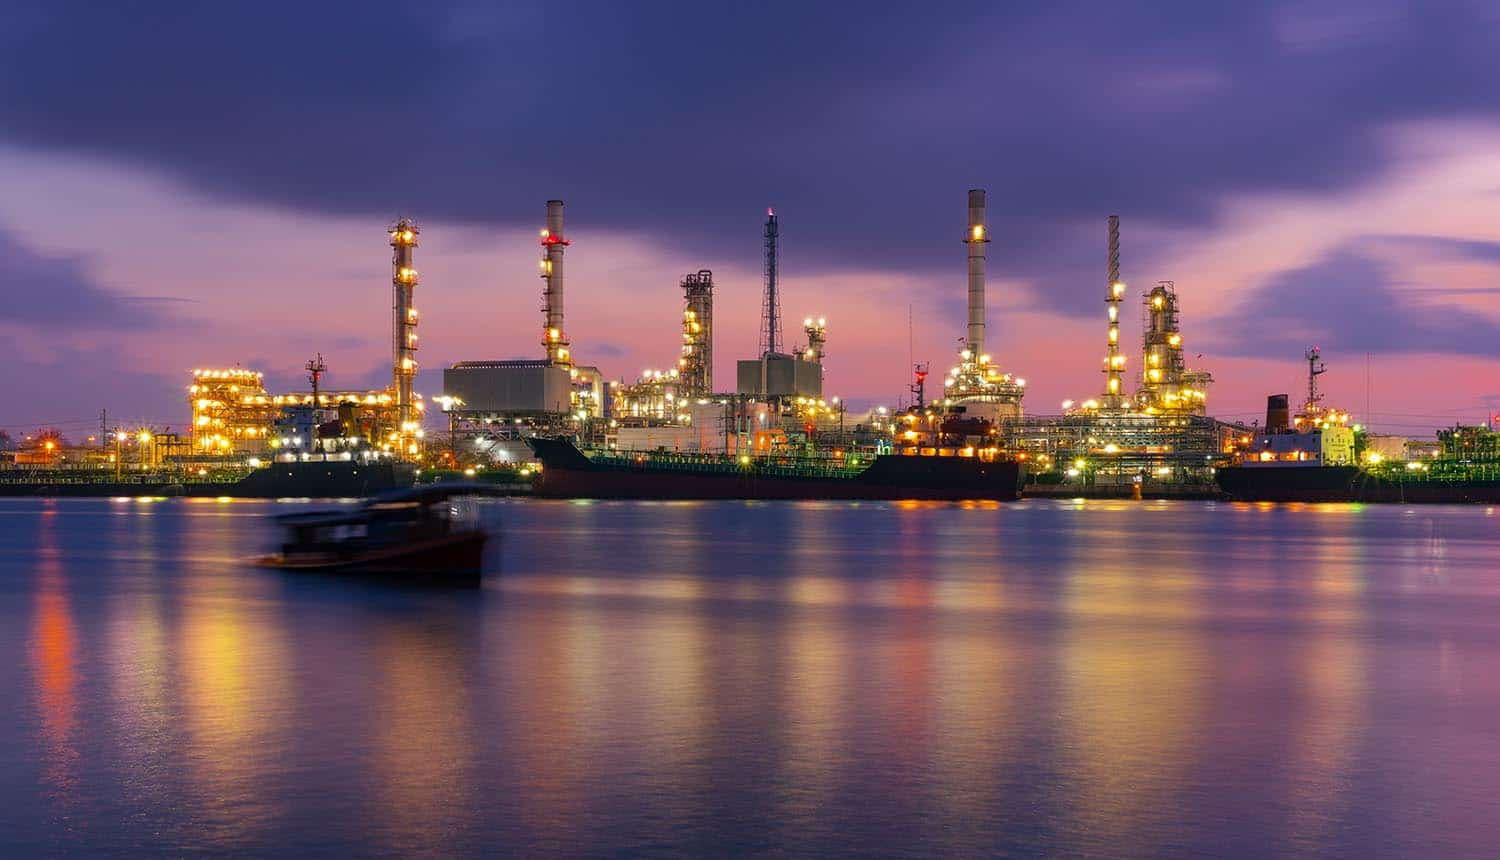 Sunrise at oil refinery factory showing cyber threats targeting critical infrastructure